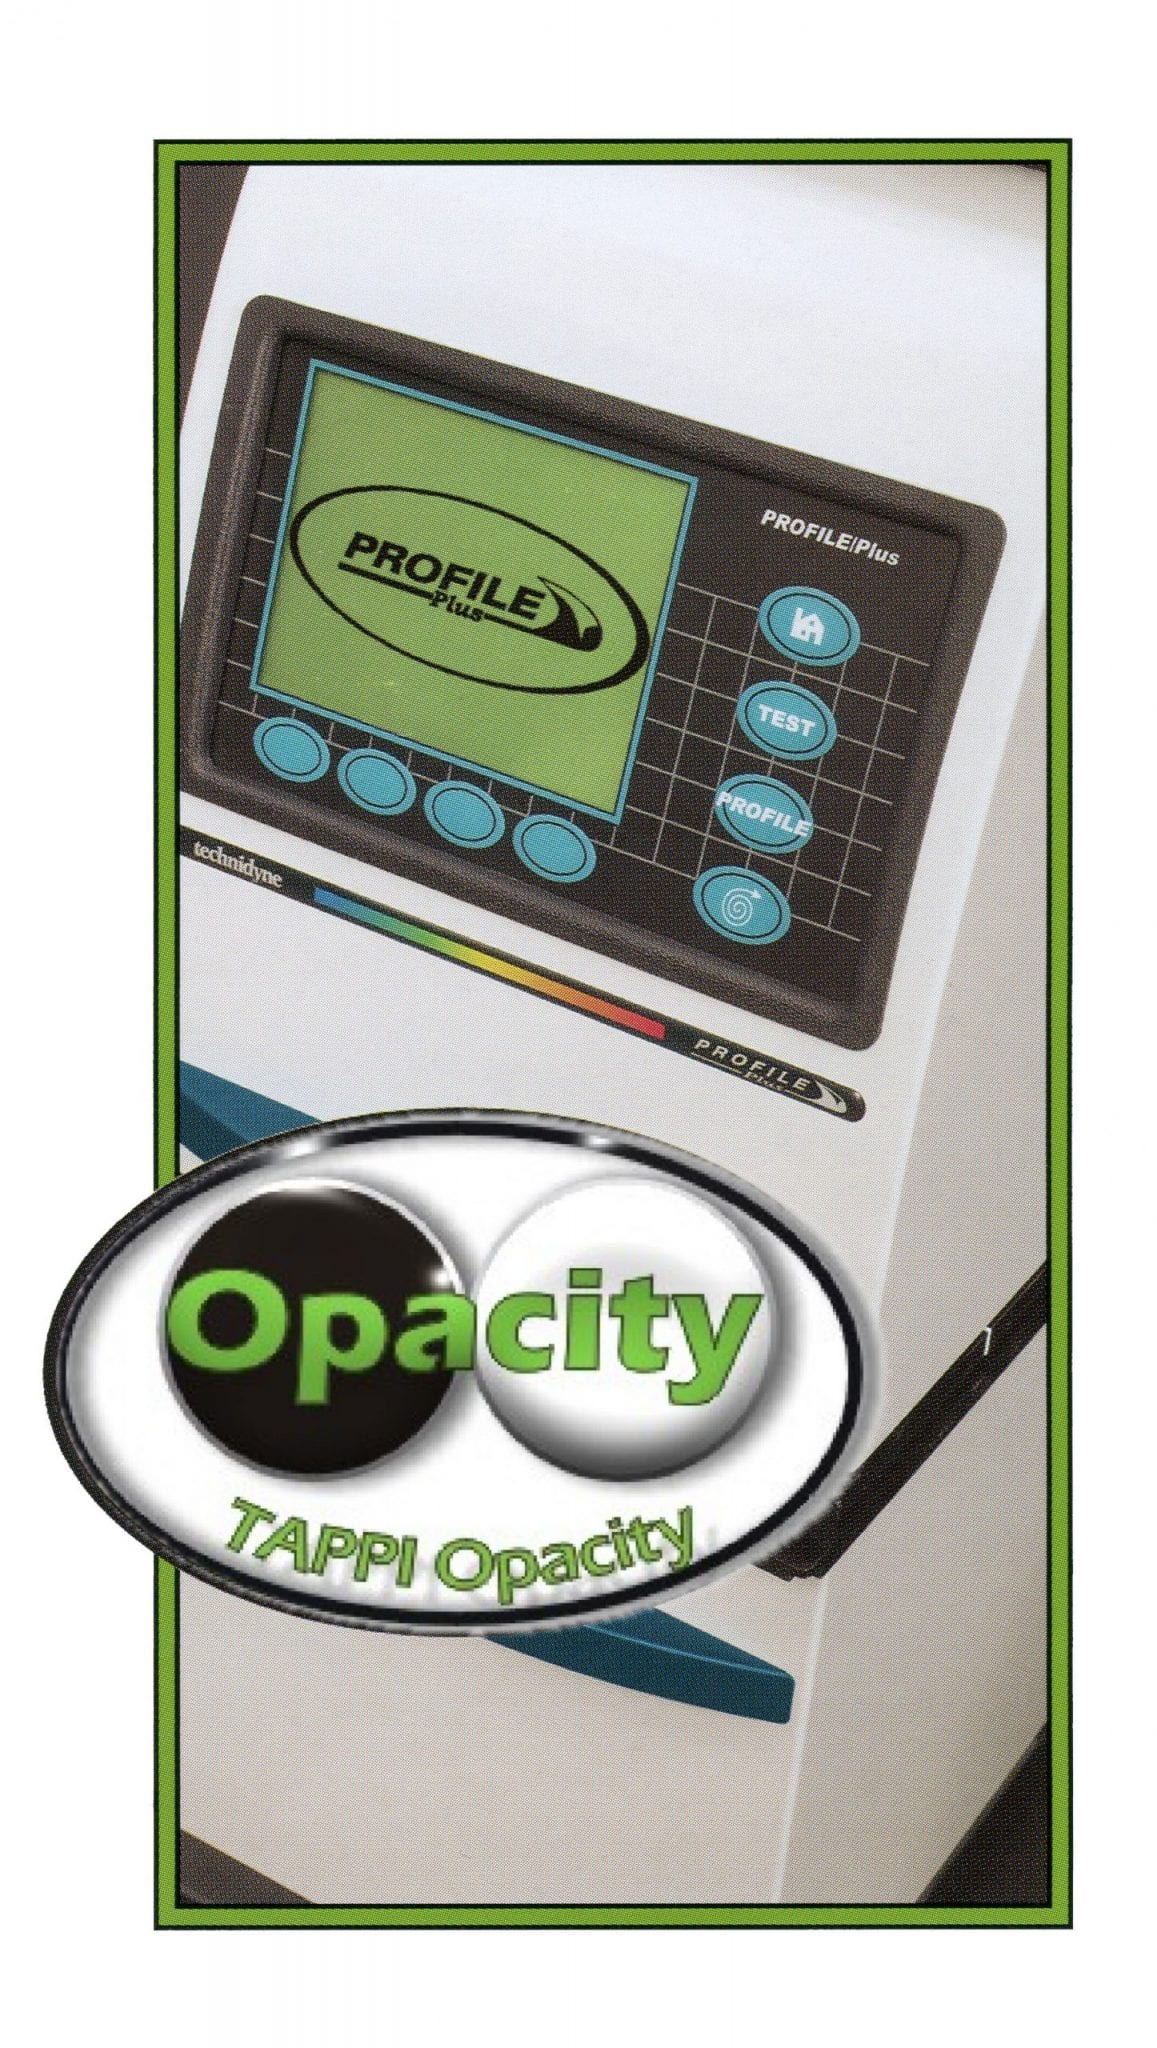 PROFILE Plus Opacity – Technidyne